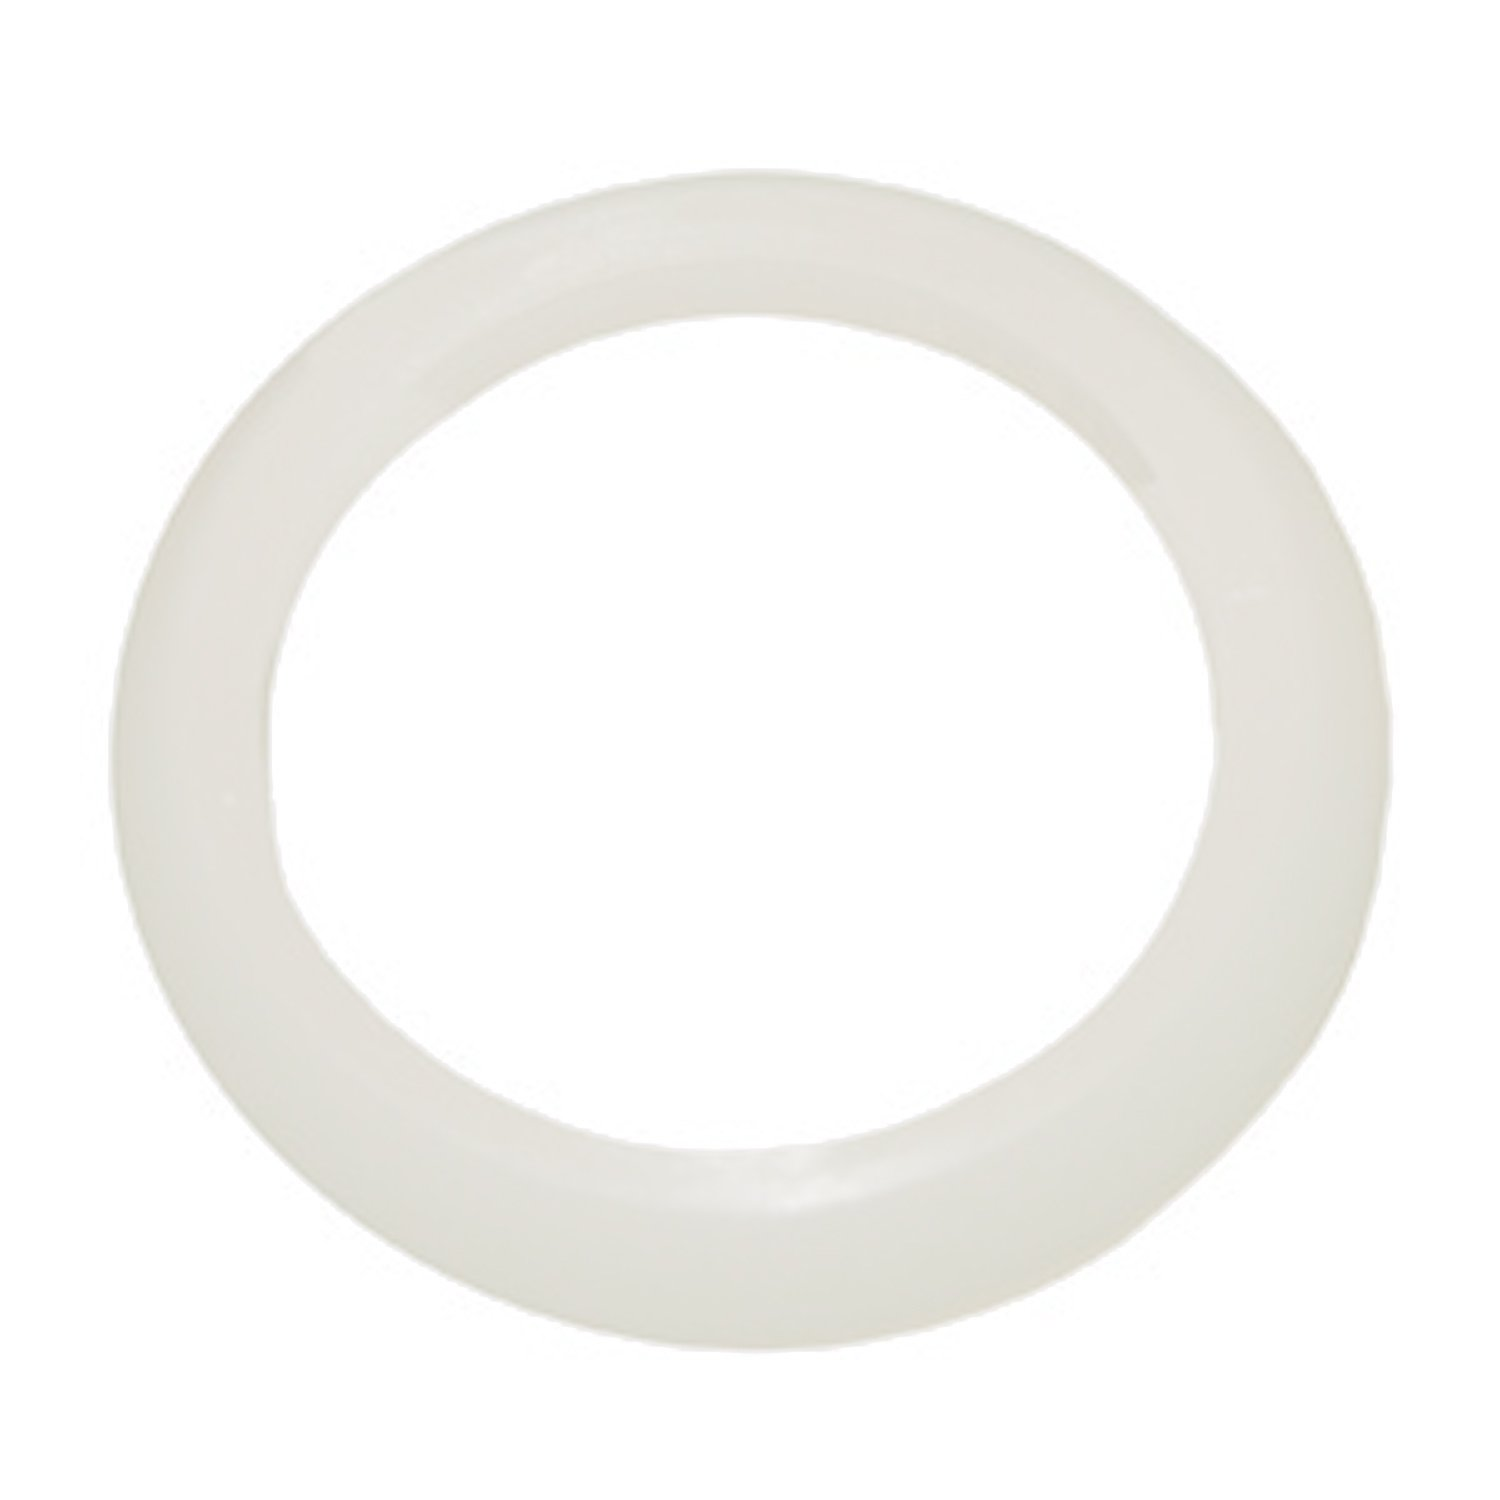 LASCO 02-2286D Plastic Beveled Slip Joint Drain Washer, 1-1/2'' X 1-1/4'' (Pack of 100)